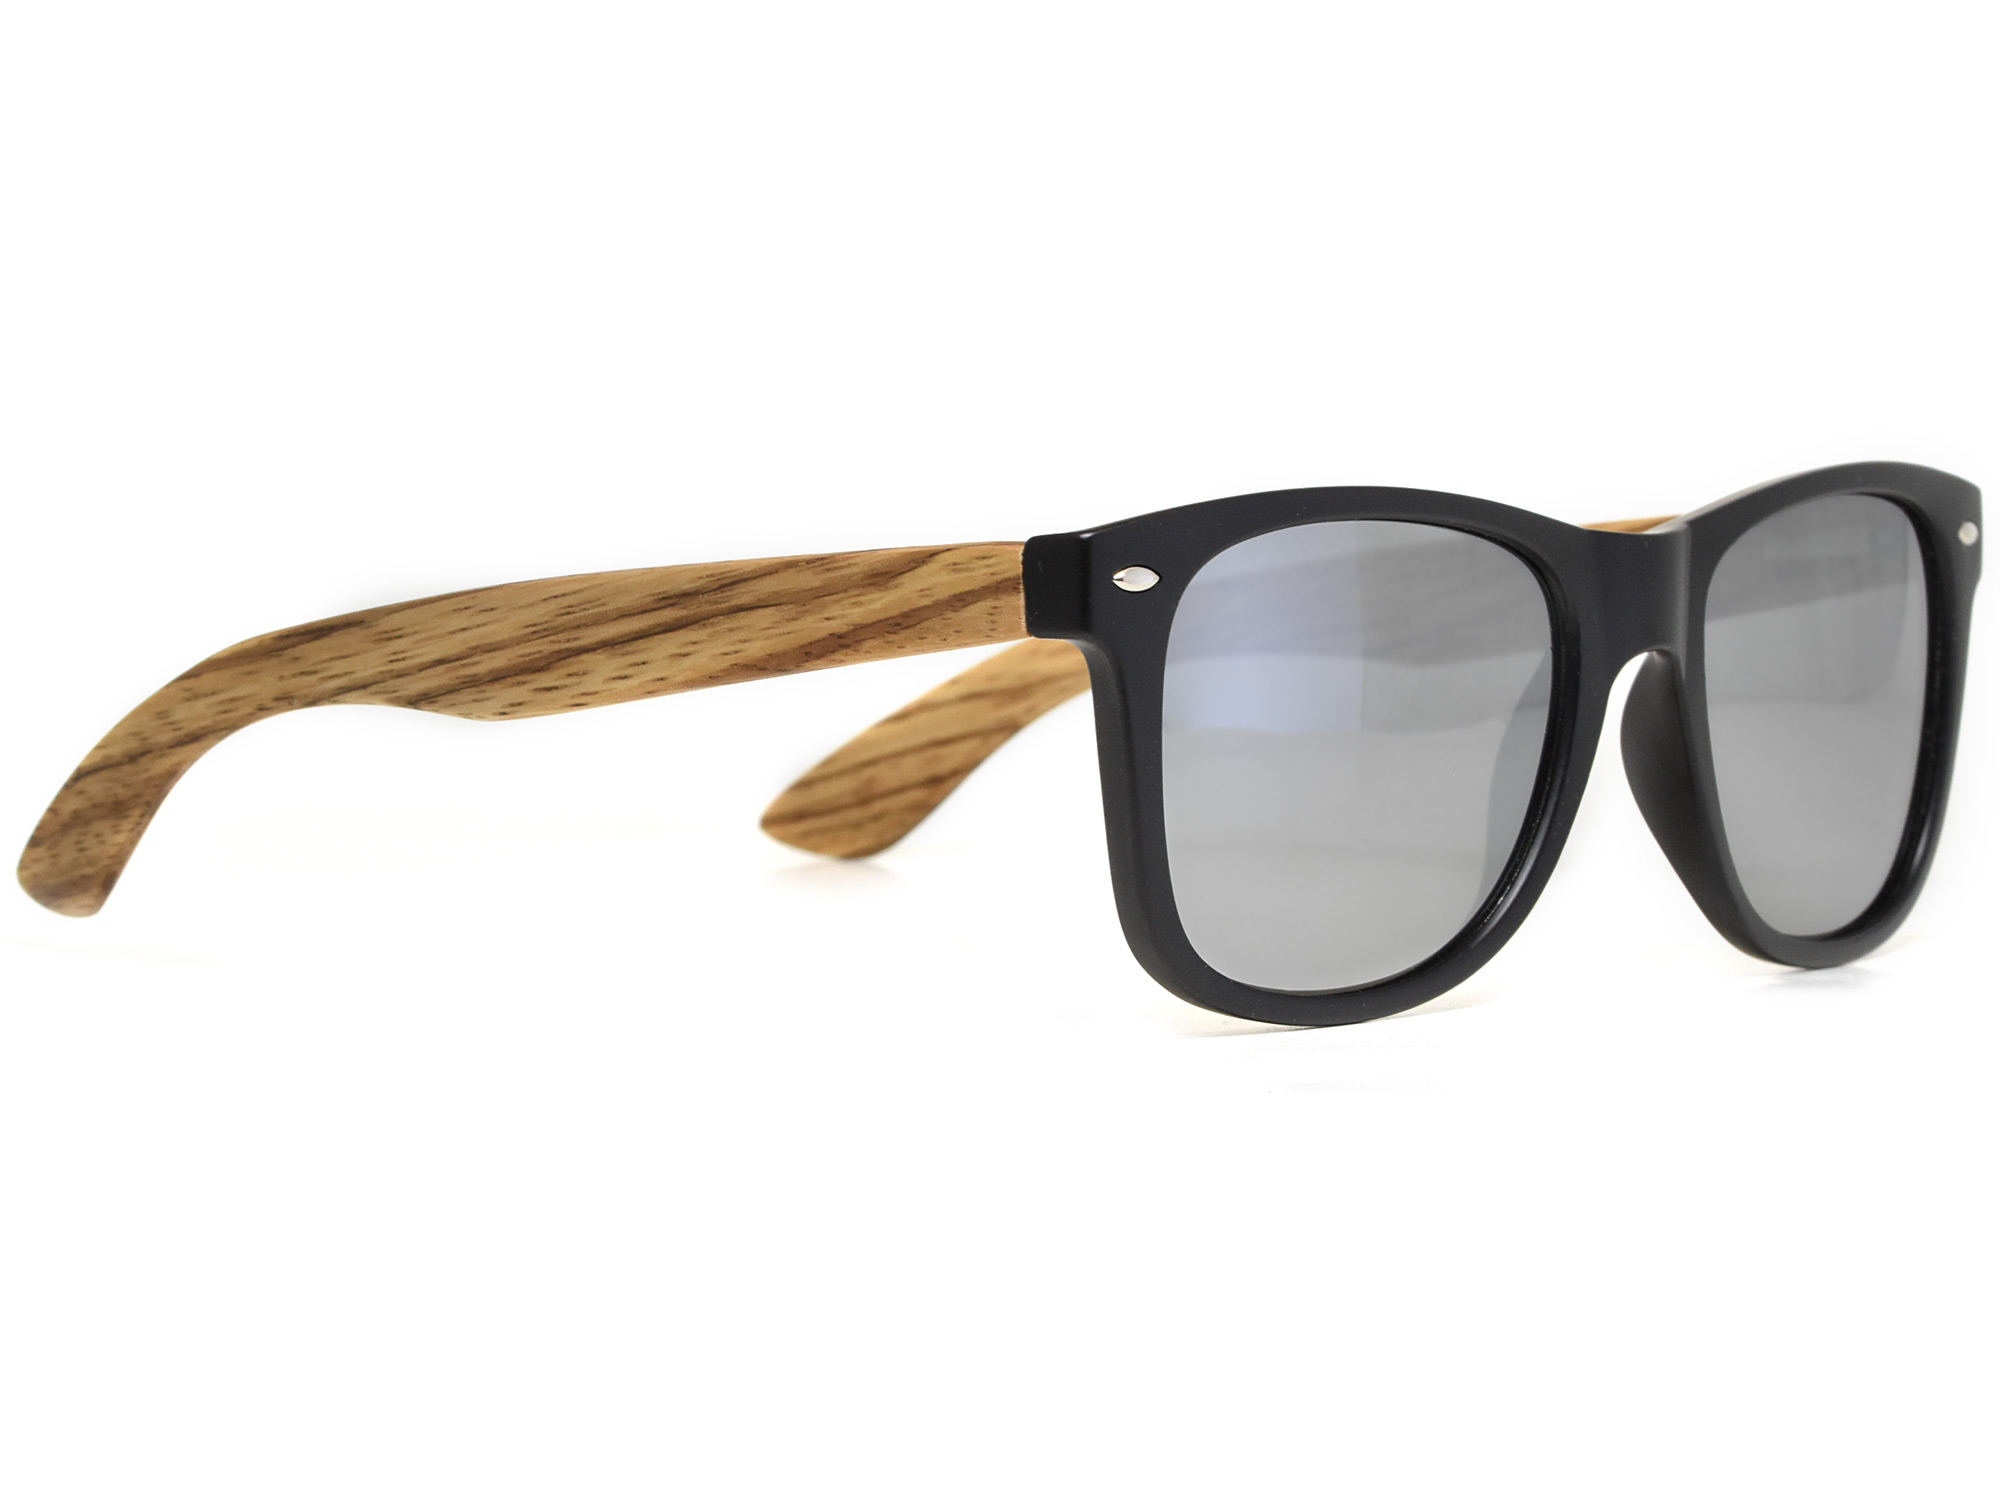 Zebra wood sunglasses with silver mirrored lenses right